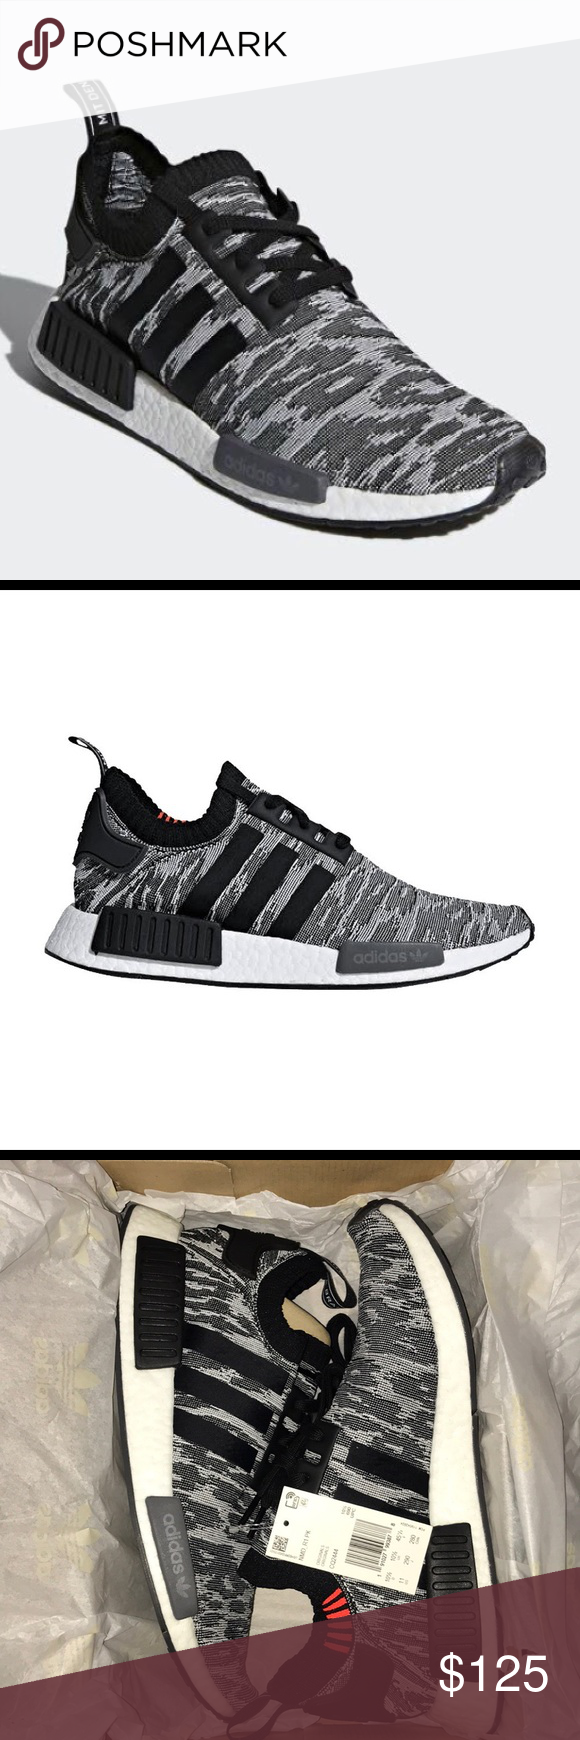 best sneakers 6c08d 81766 Adidas NMD_R1 PK CQ2444 Born from an inspired past, made for ...